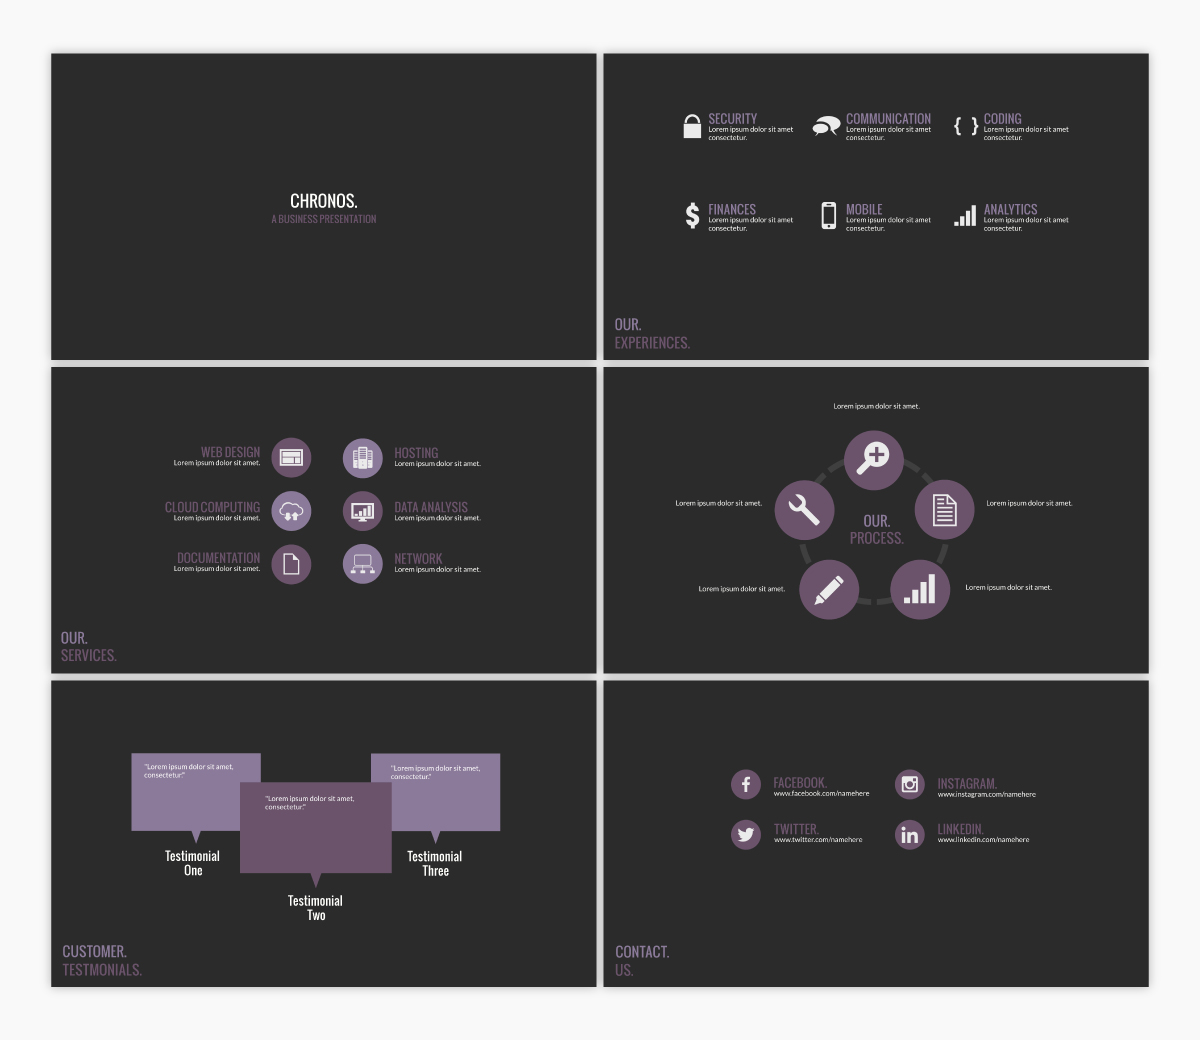 A black and purple keynote template available to customize in Visme.